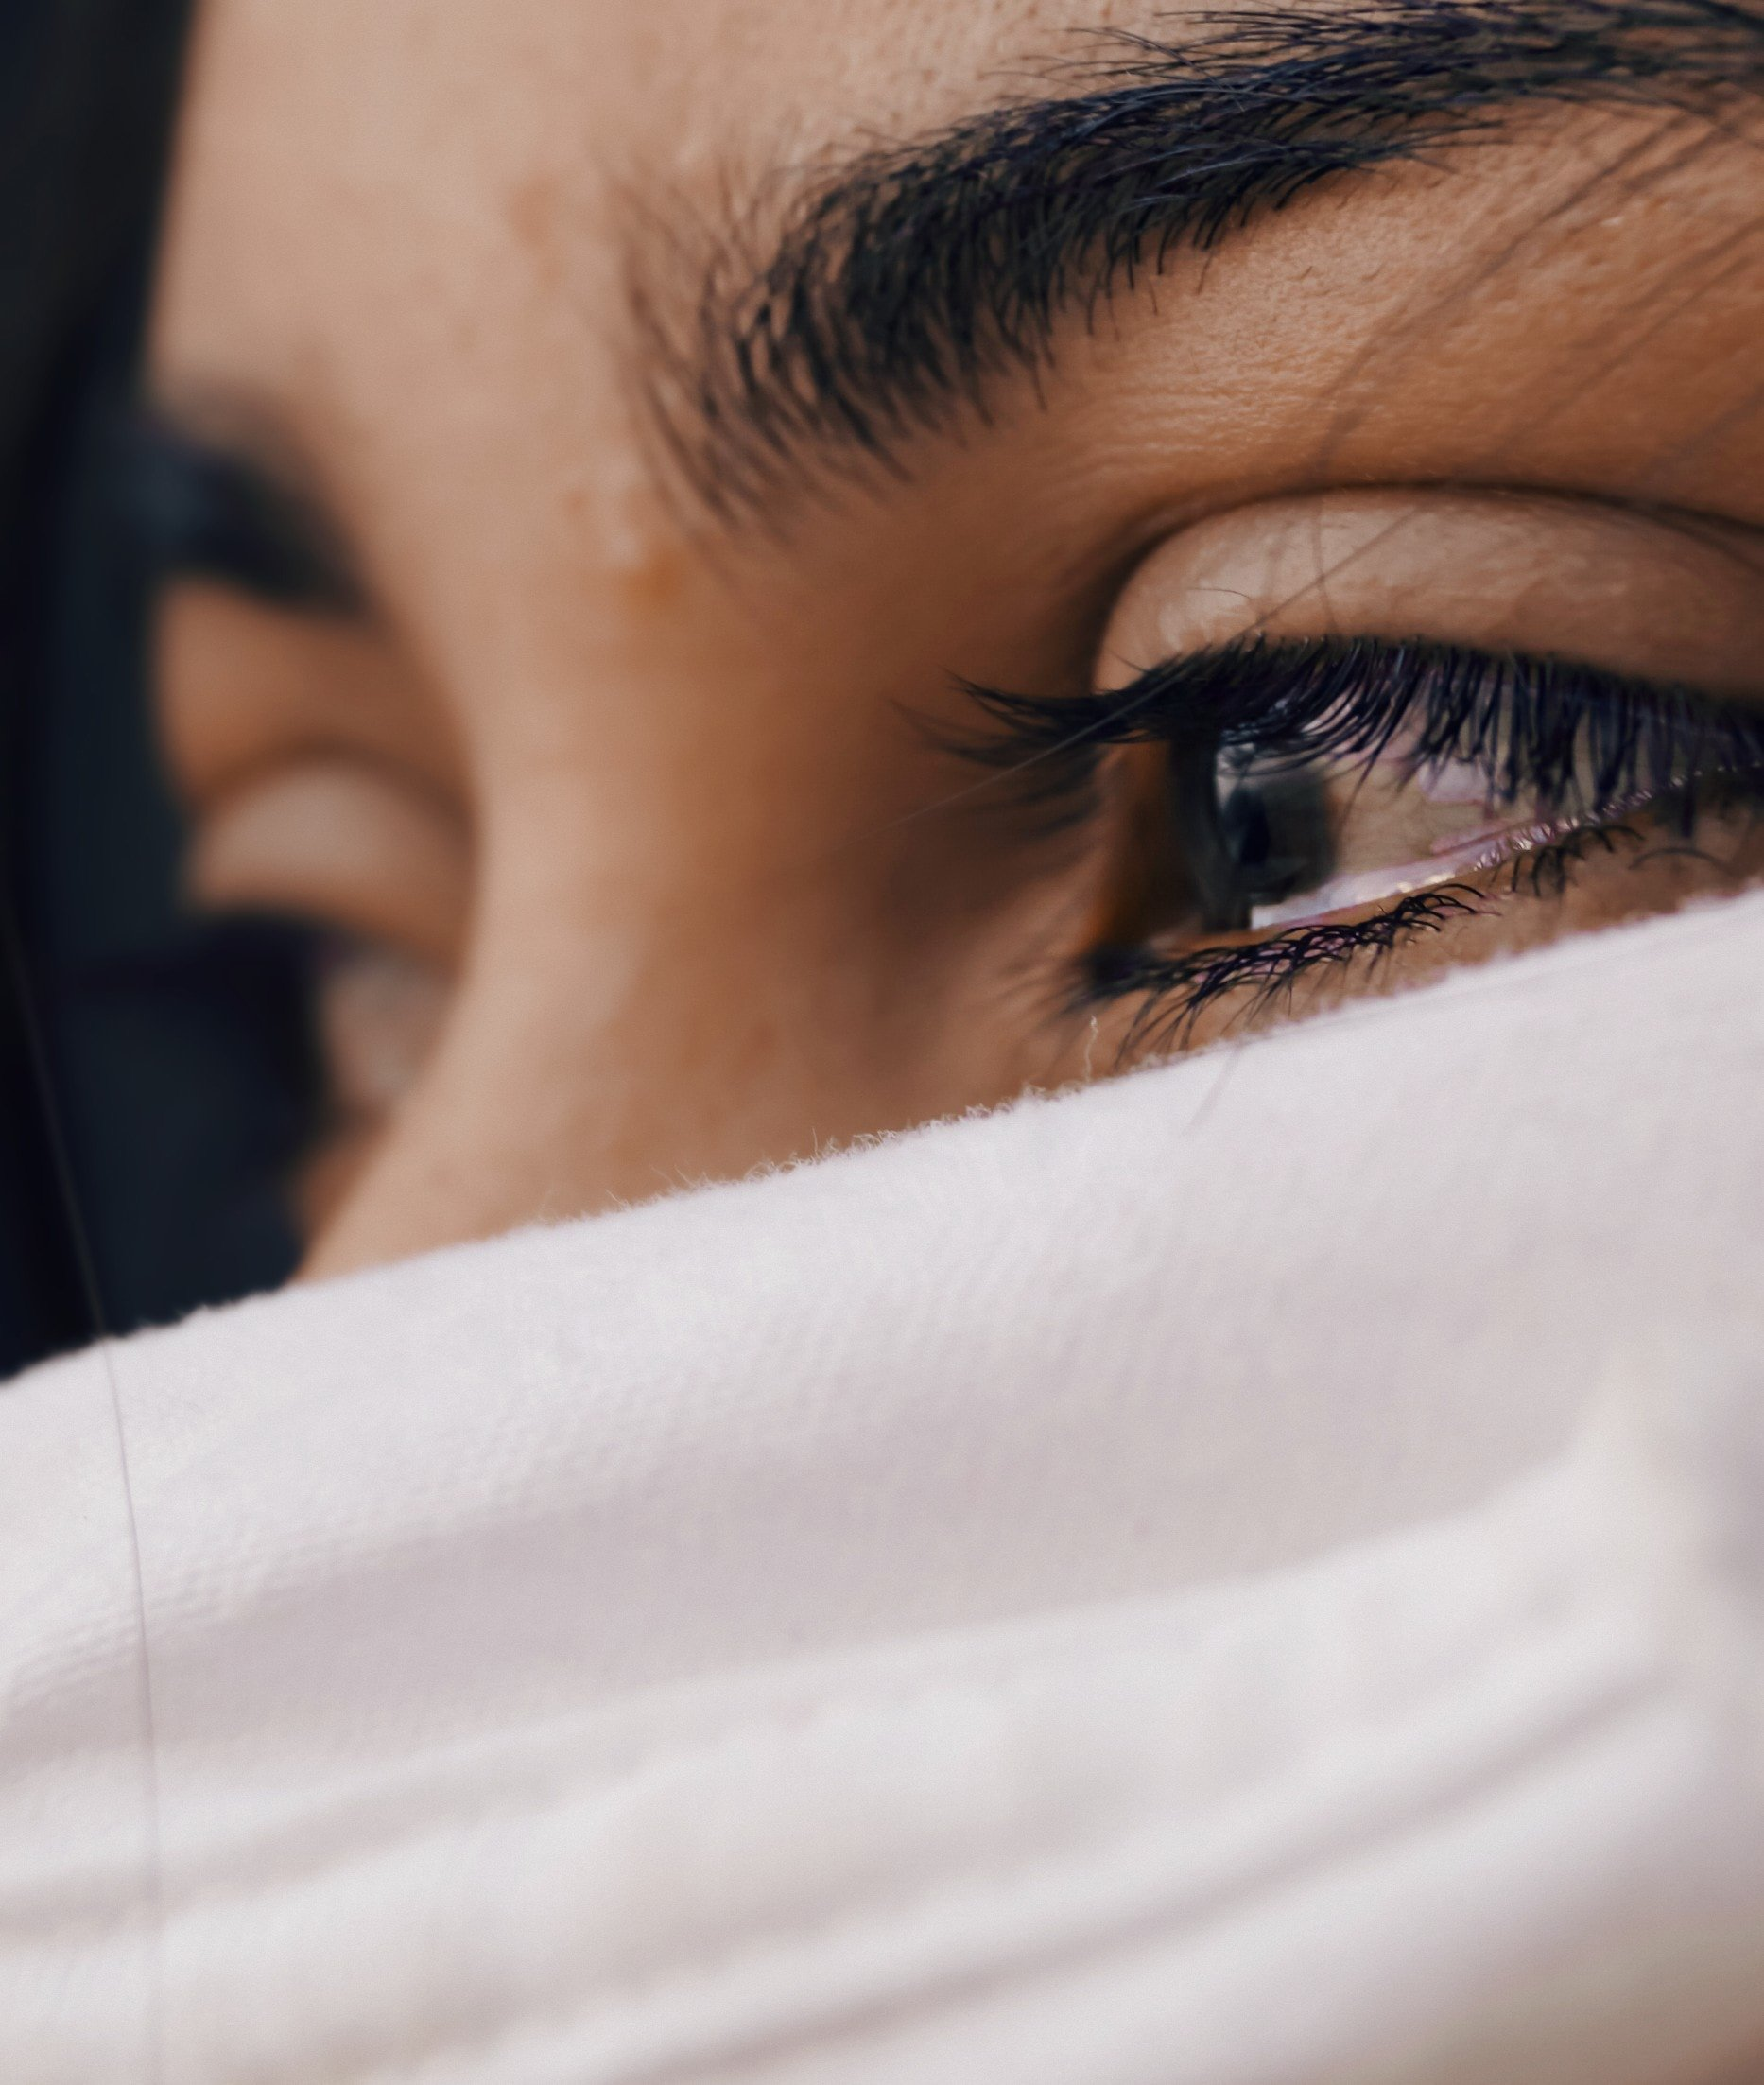 A woman with tears in her eyes | Source: Unsplash.com